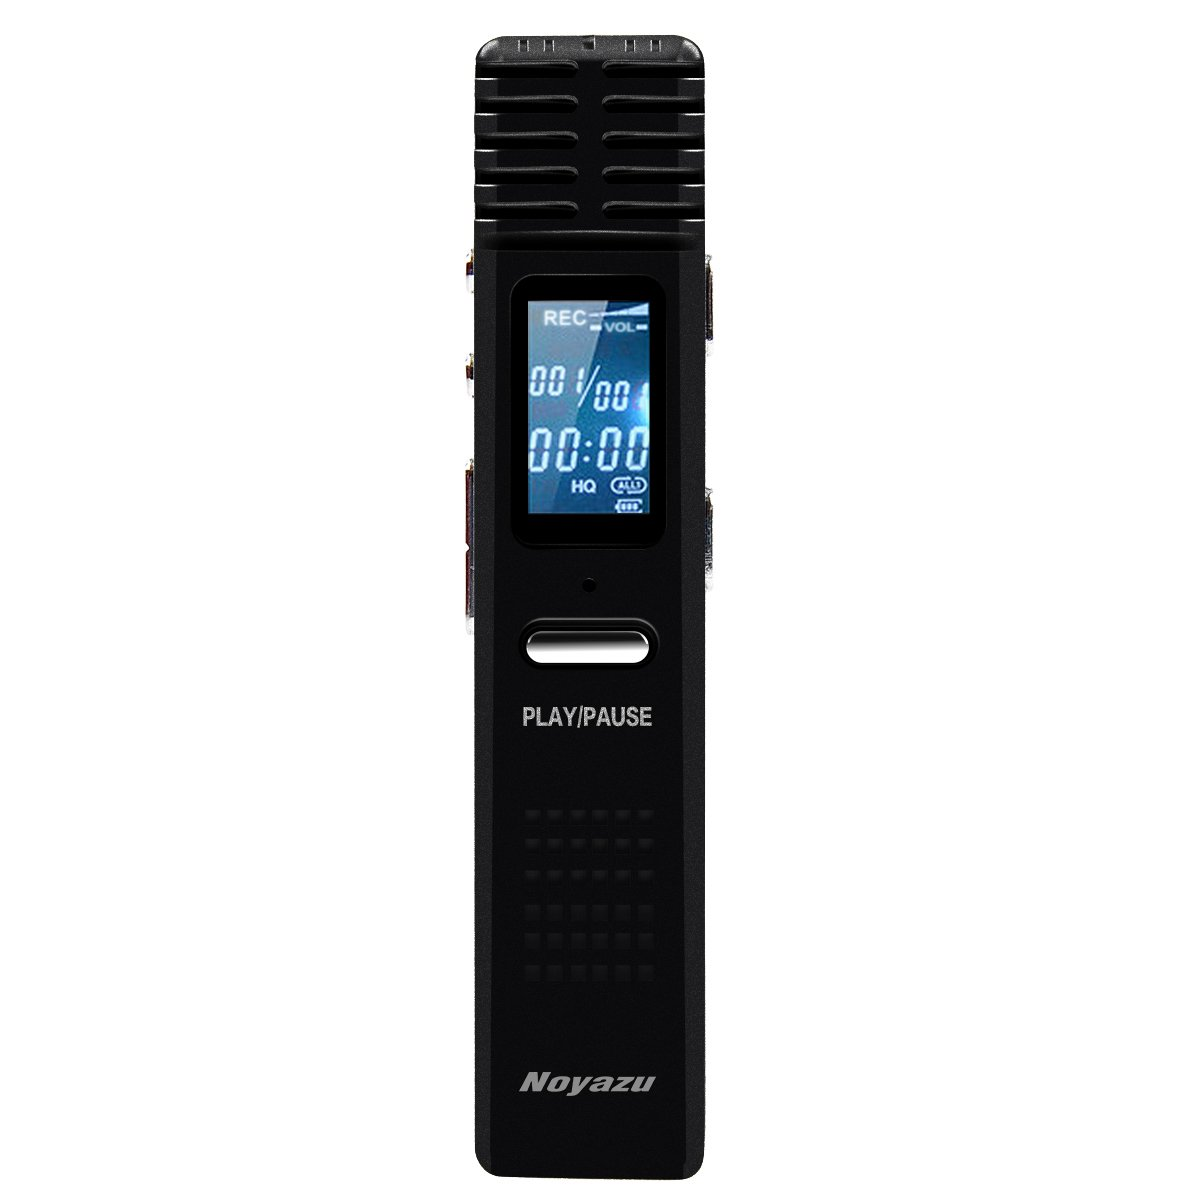 NOYAZU X1 8G Long Time Recording Digital Voice Recorder Voice Activated Record Stereo Recorder Rechargeable Dictaphone LCD MP3 Player for Classes Lectures Meetings Notes (Black)